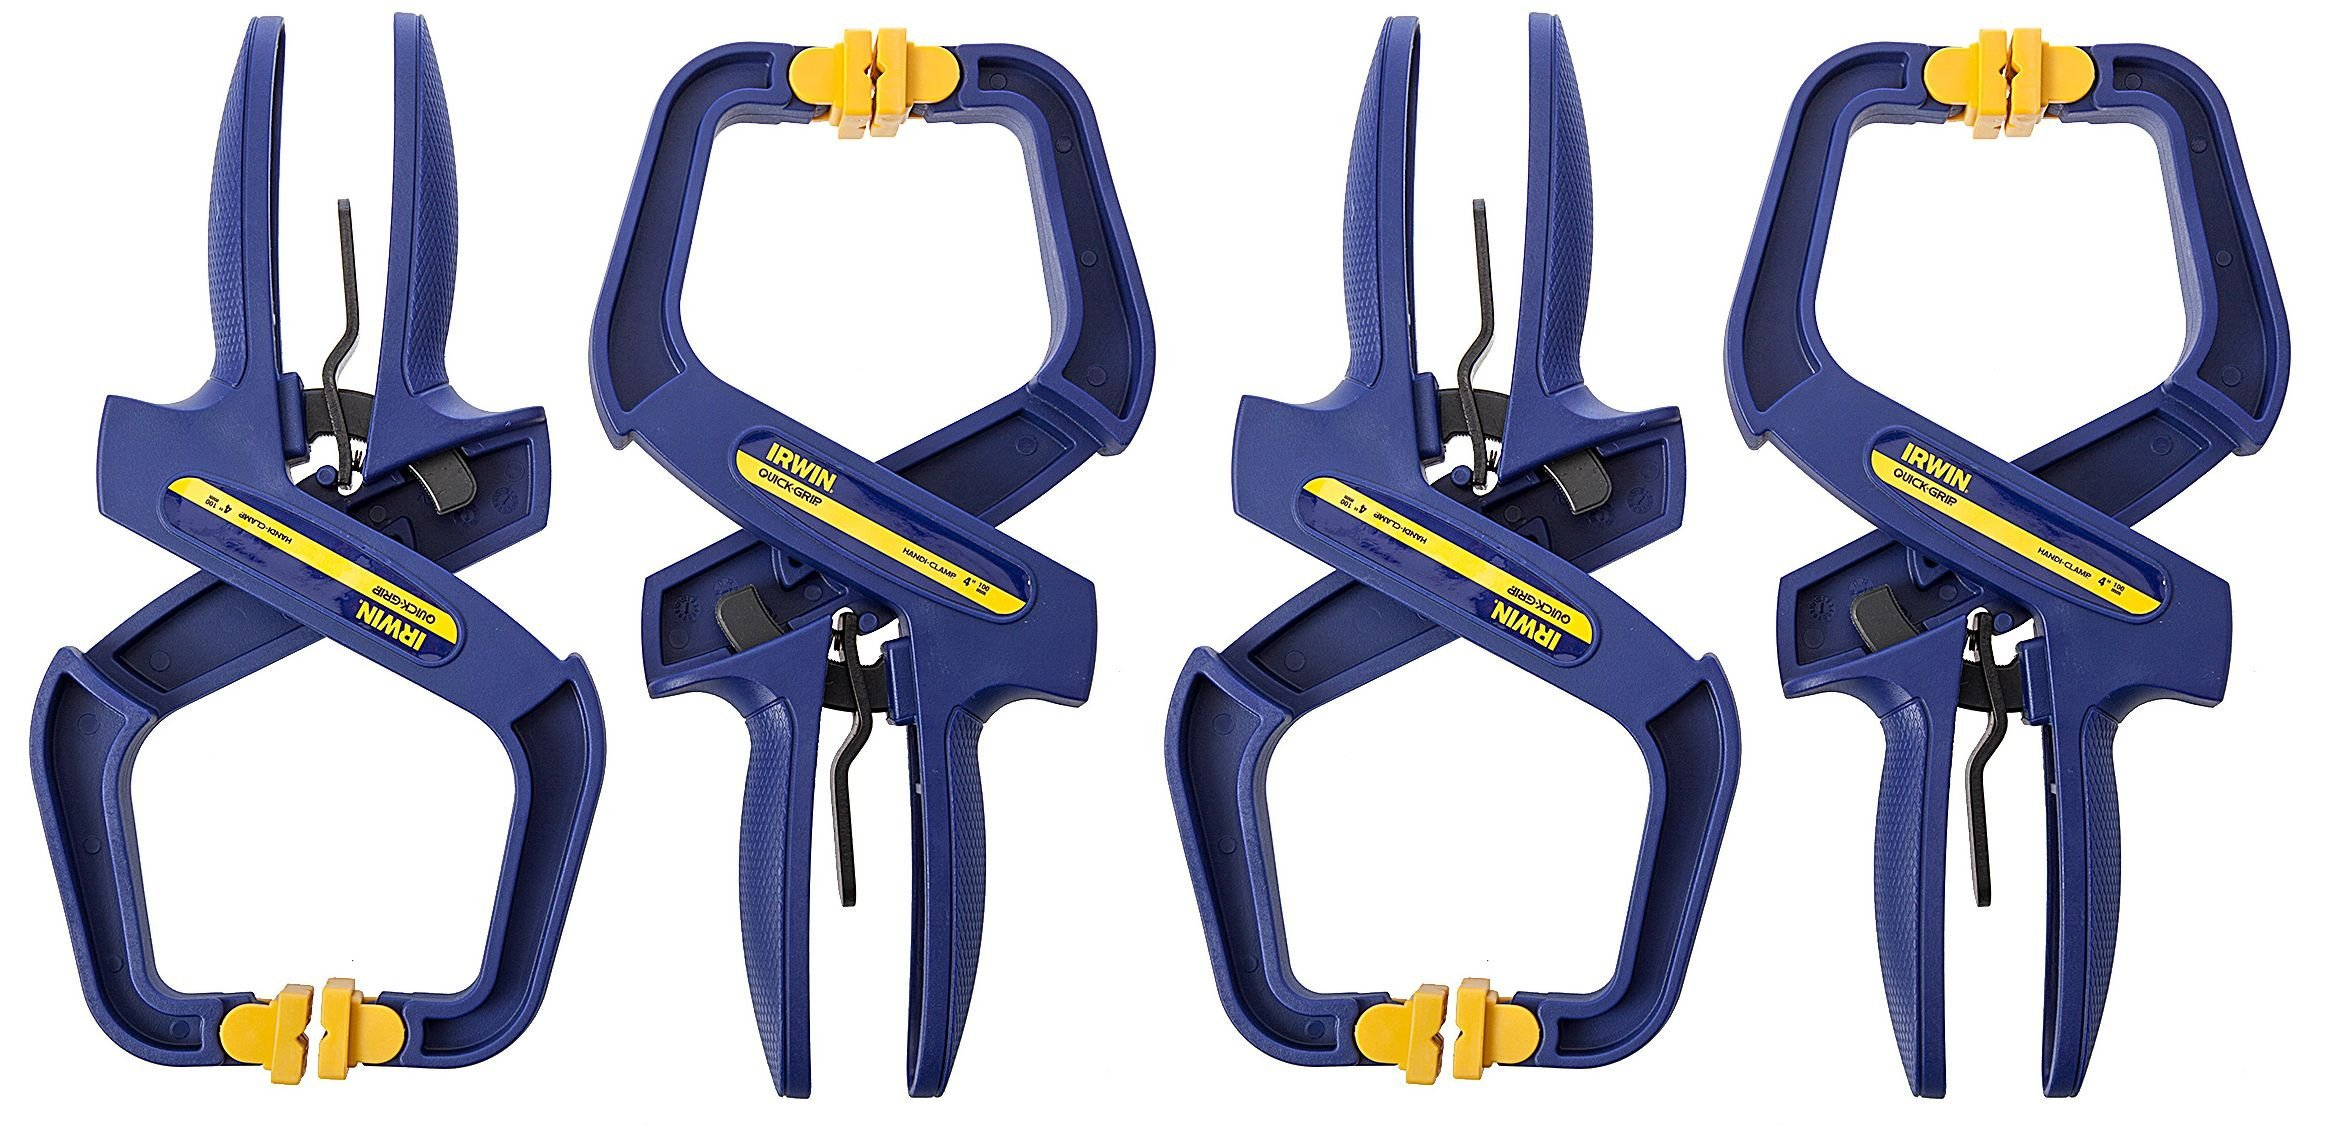 IRWIN Tools QUICK-GRIP Handi-Clamp, 2-Inch (4-pack Gift Set) by Irwin Tools